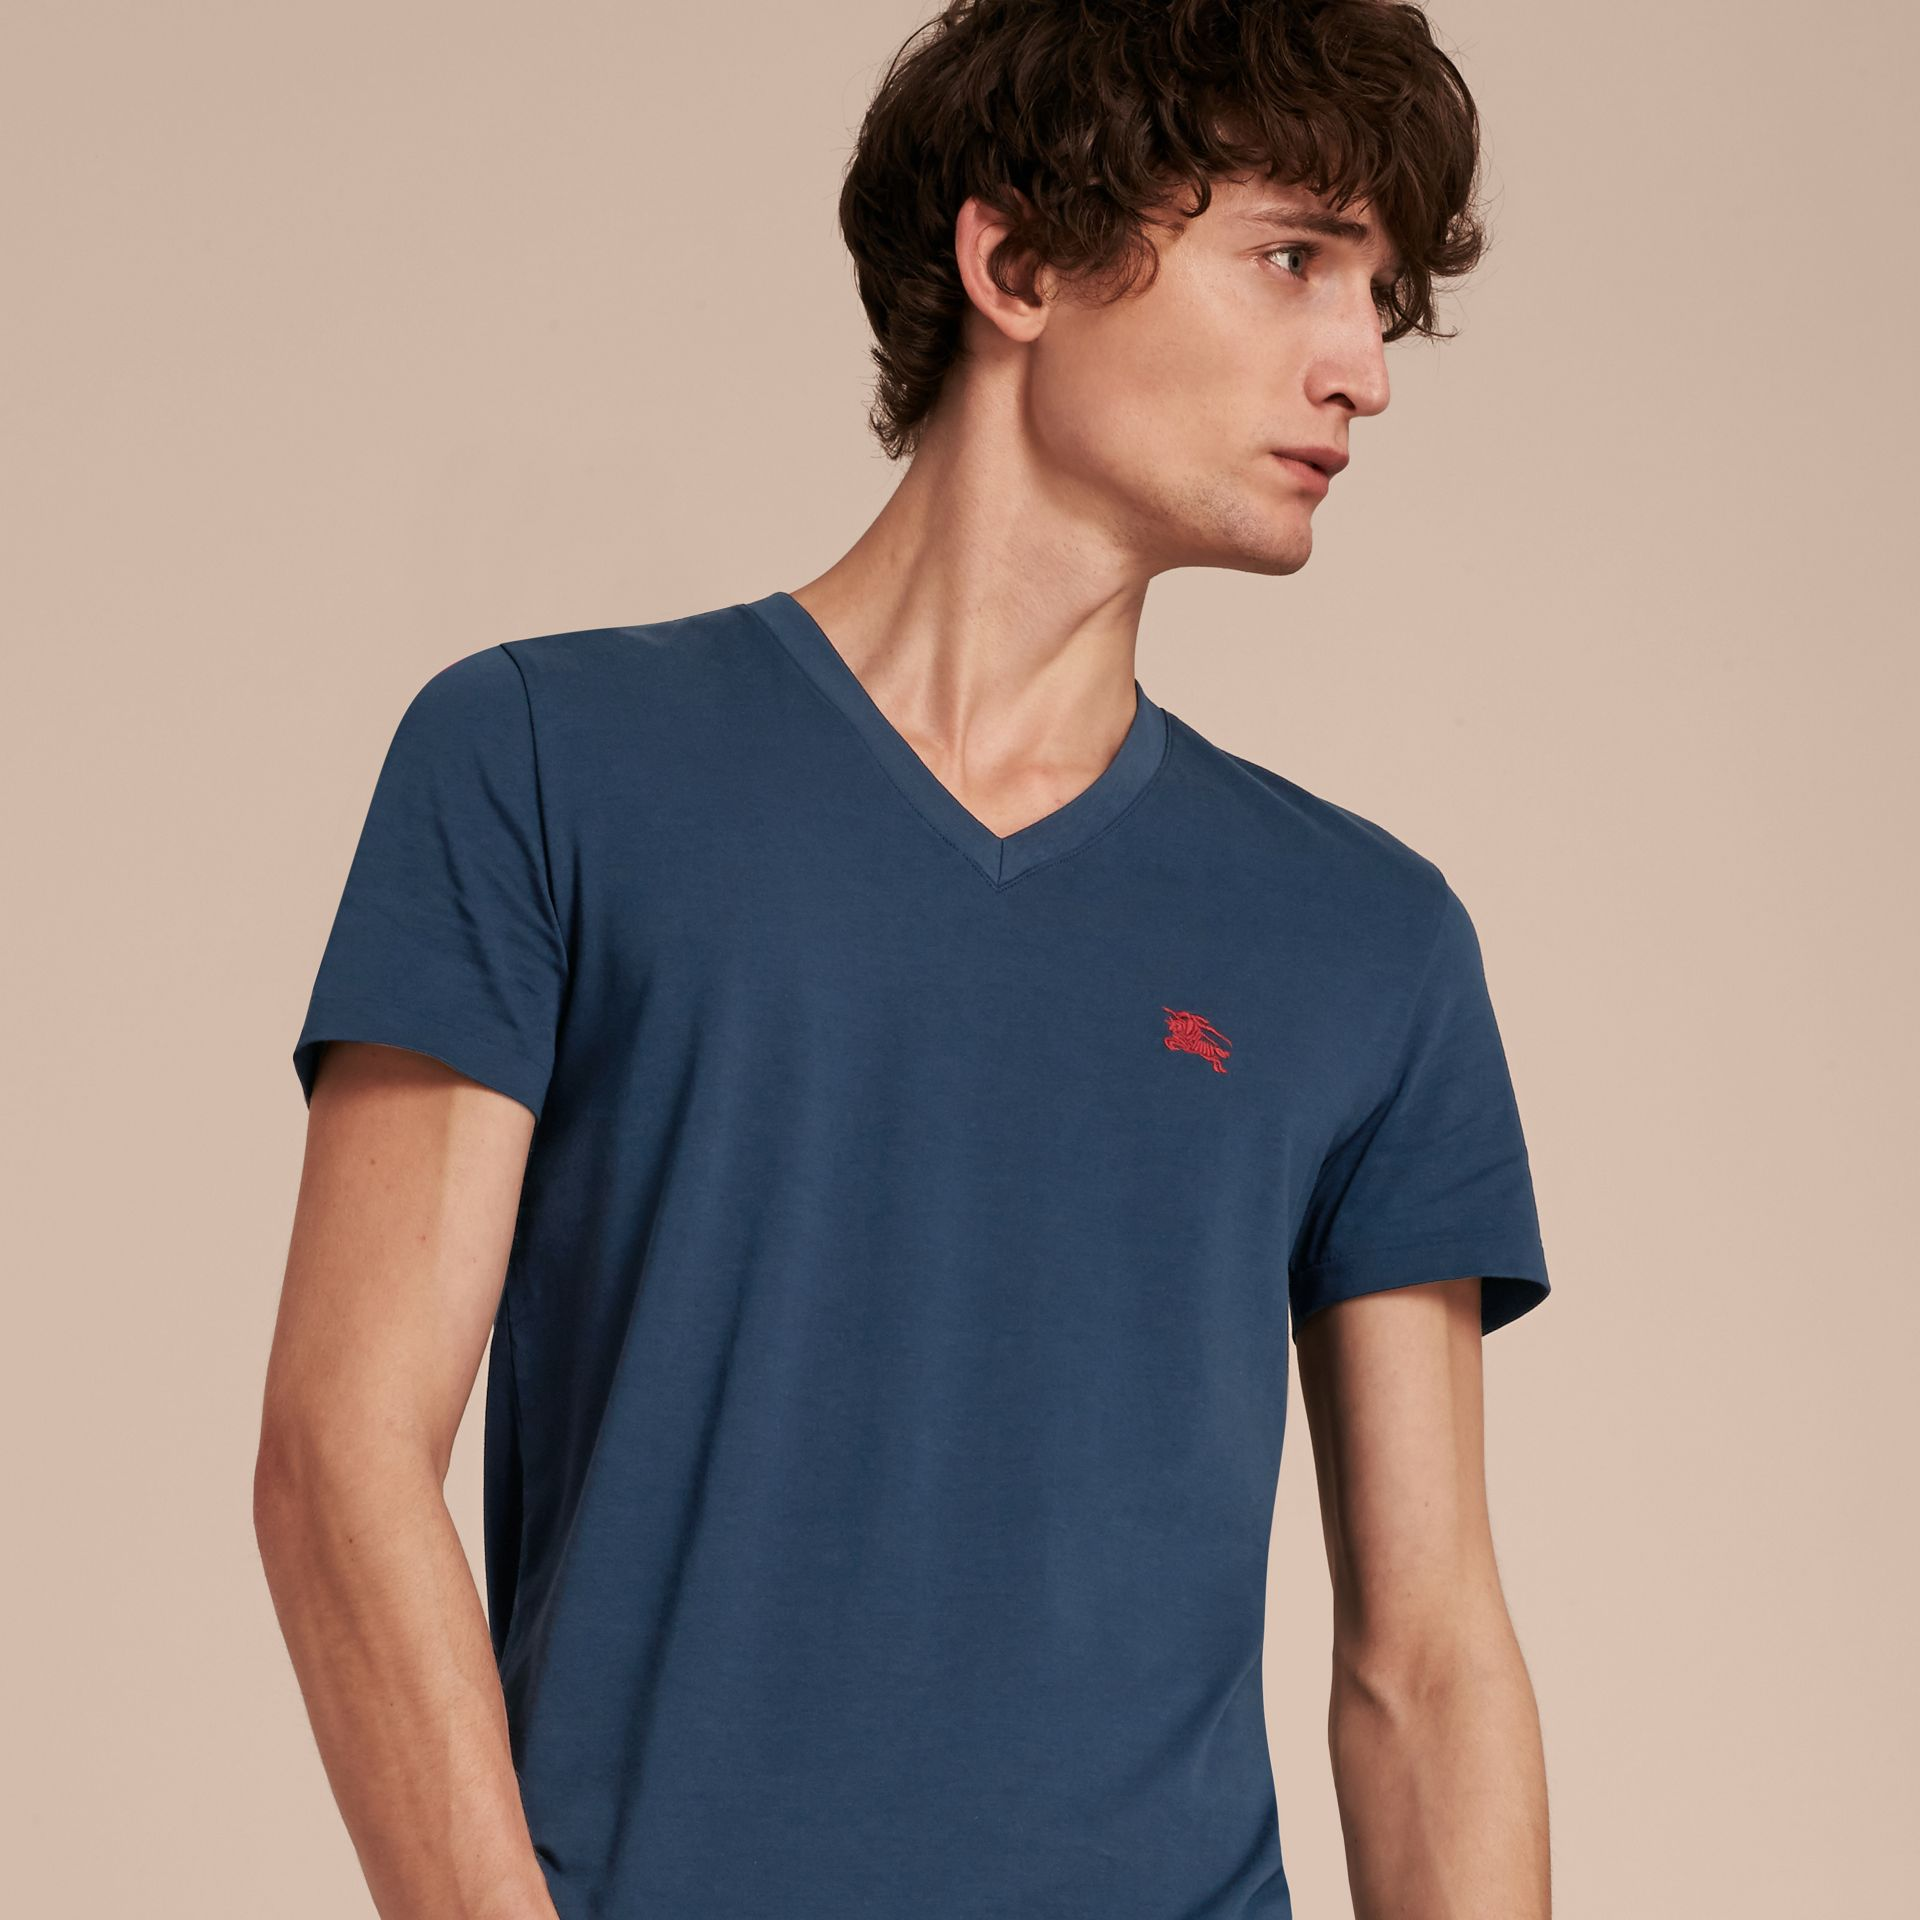 Cotton V-neck T-shirt in Navy - Men | Burberry - gallery image 6